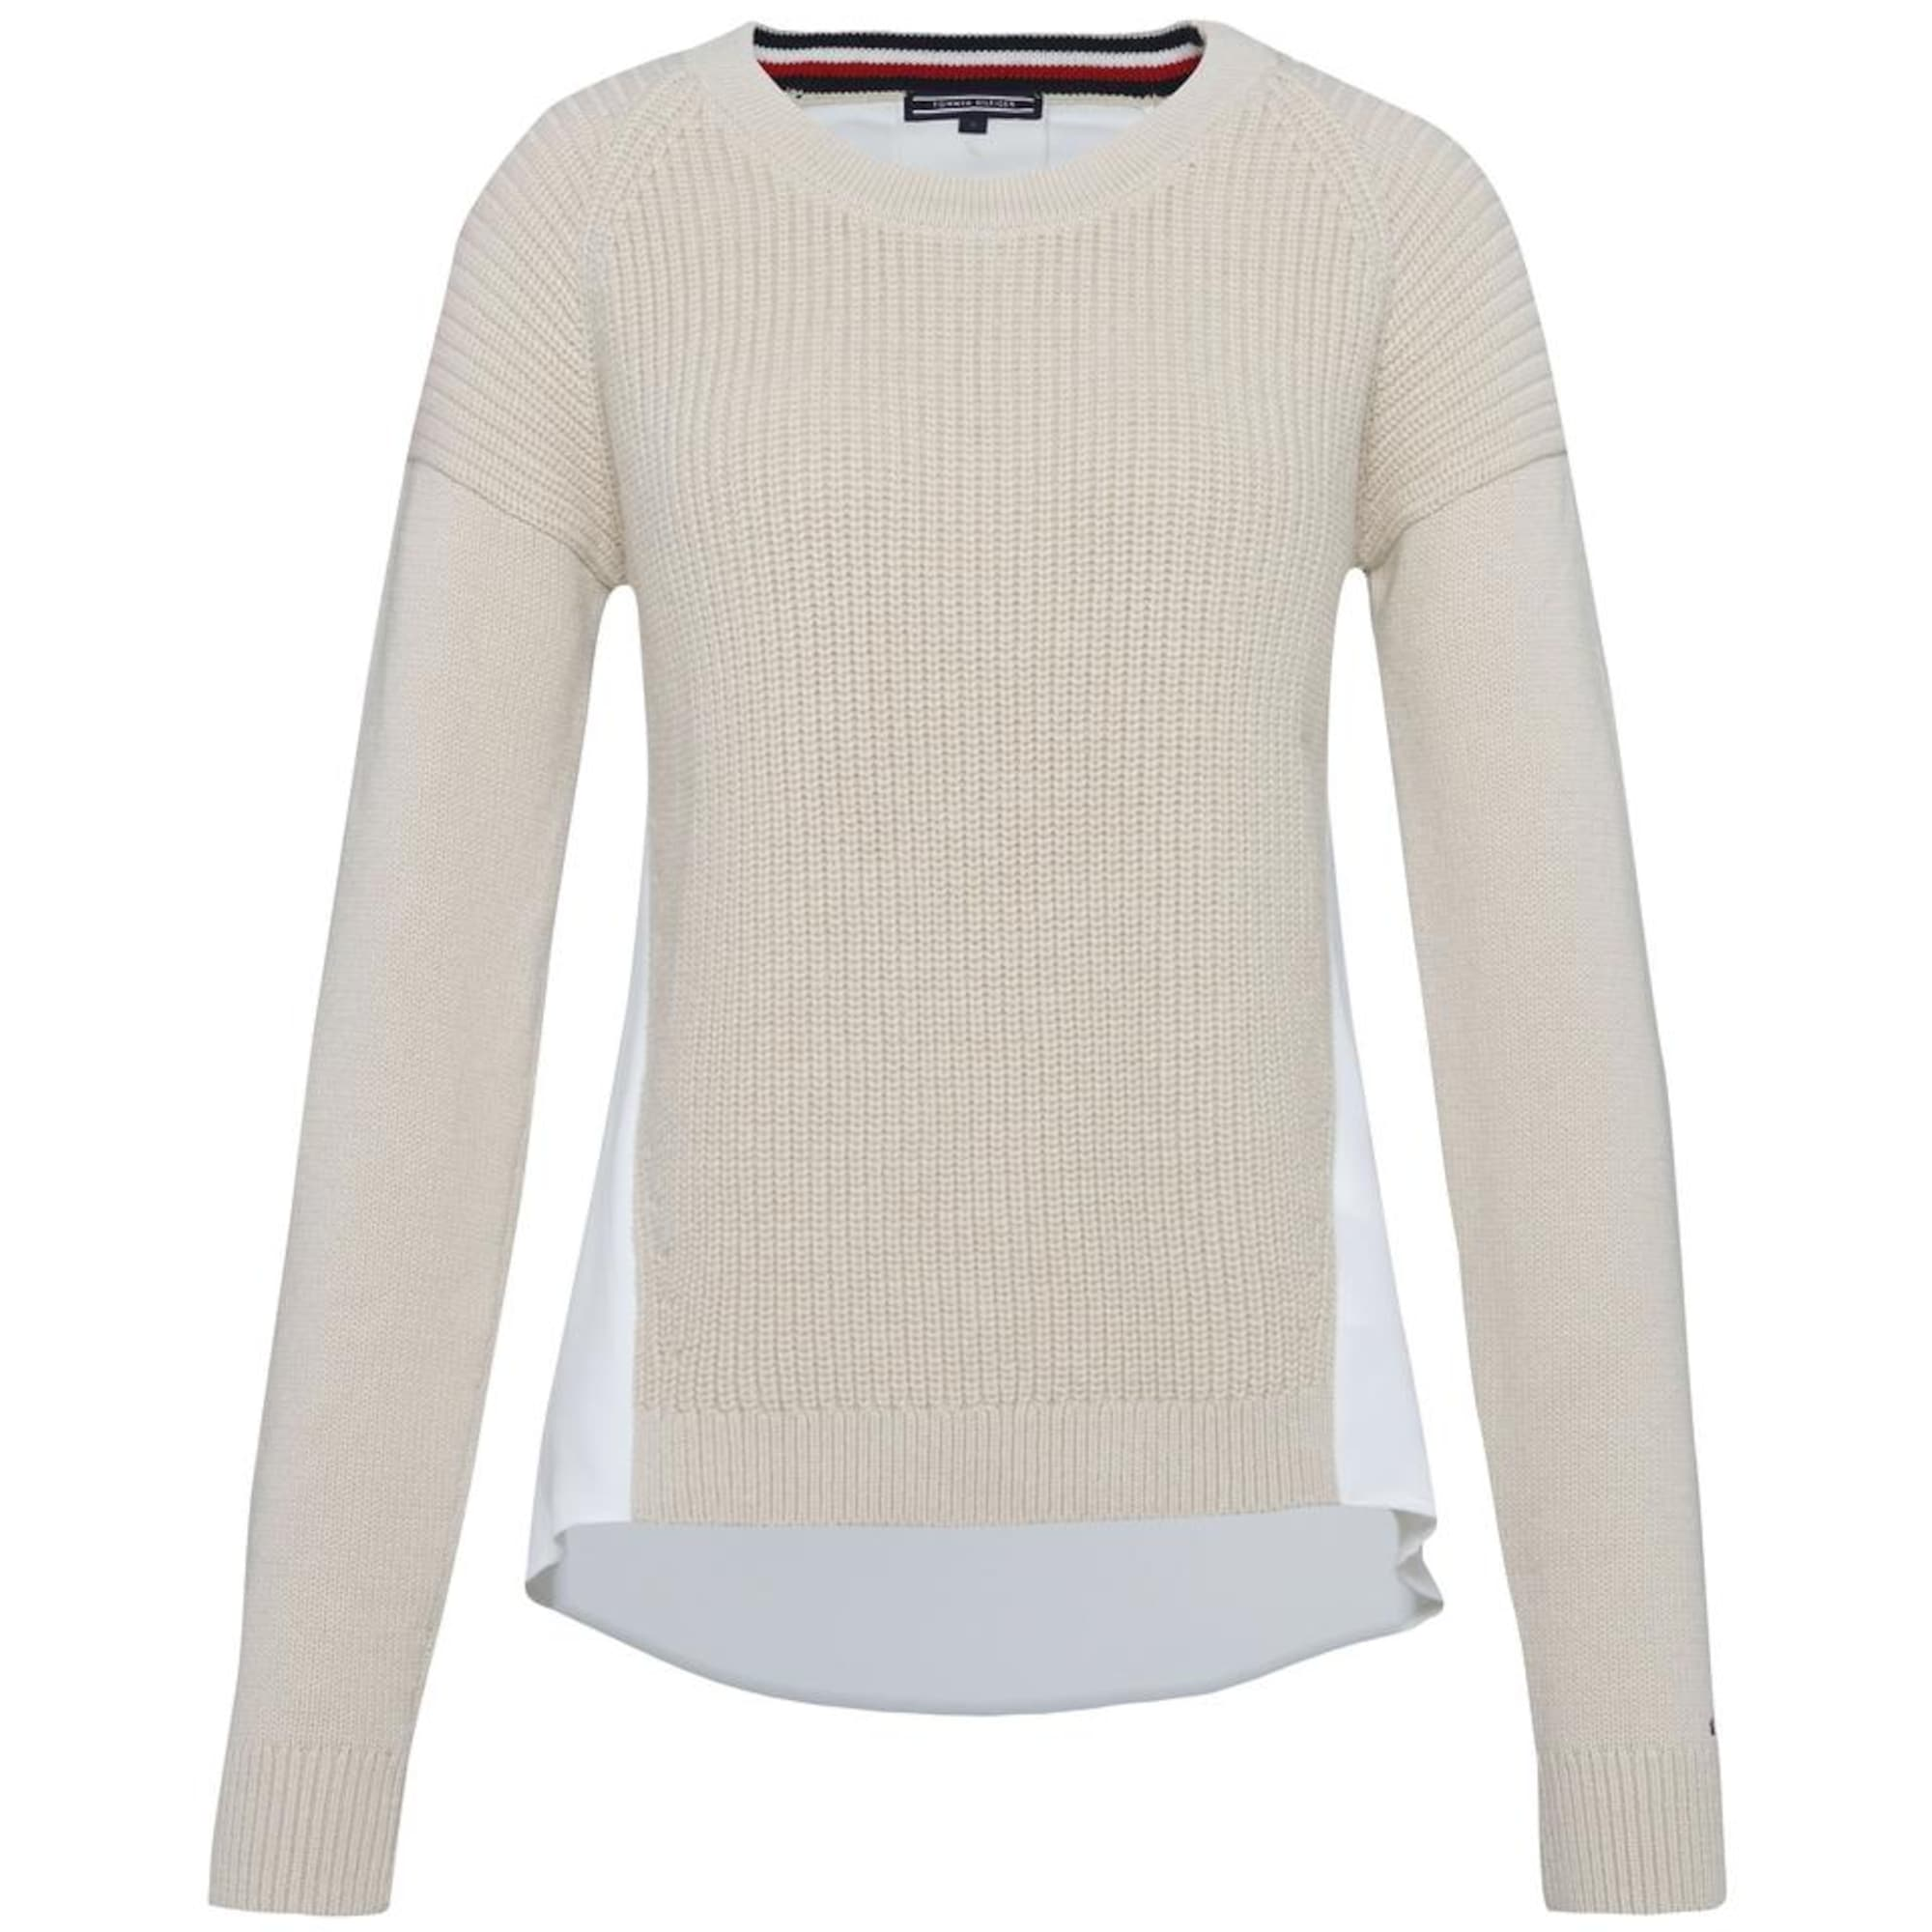 huge selection of 802d4 5e040 AboutYou Damen Tommy Hilfiger Pullover 'ABELLA FABRIC MIX C-NK SWTR' beige,  weiß | 08719256225076